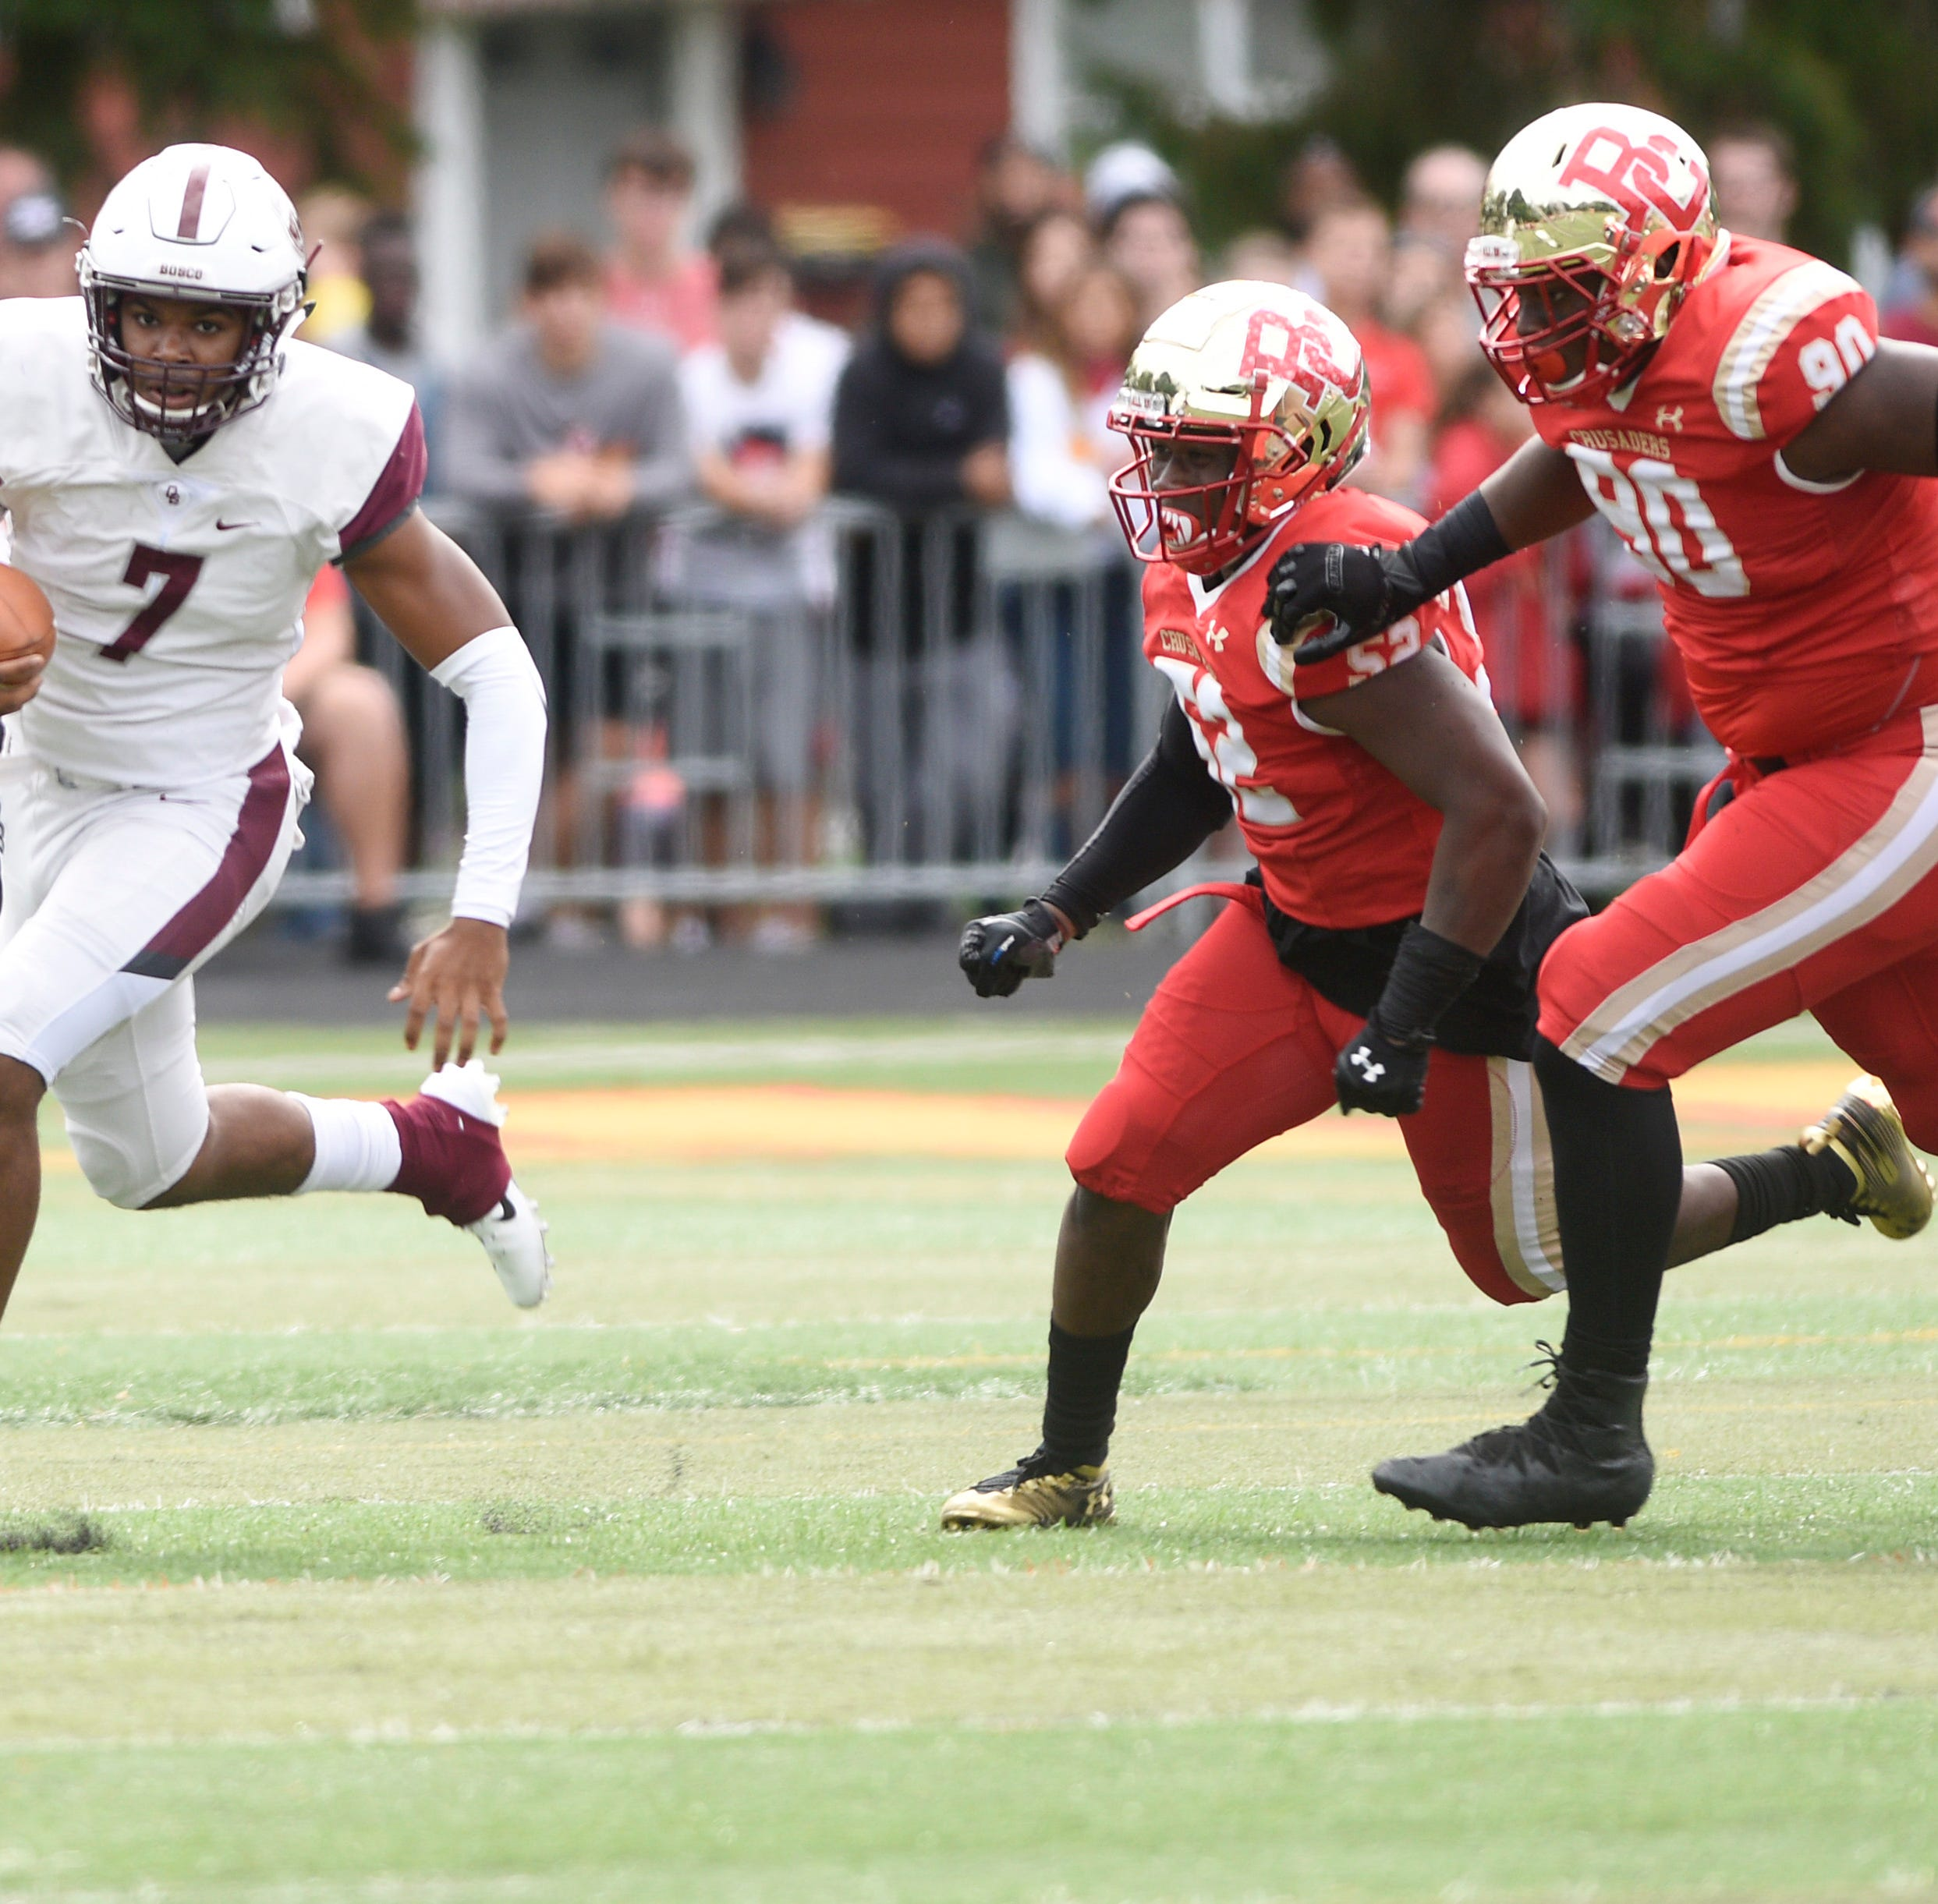 Bergen Catholic football vs. Don Bosco: Keys to the game